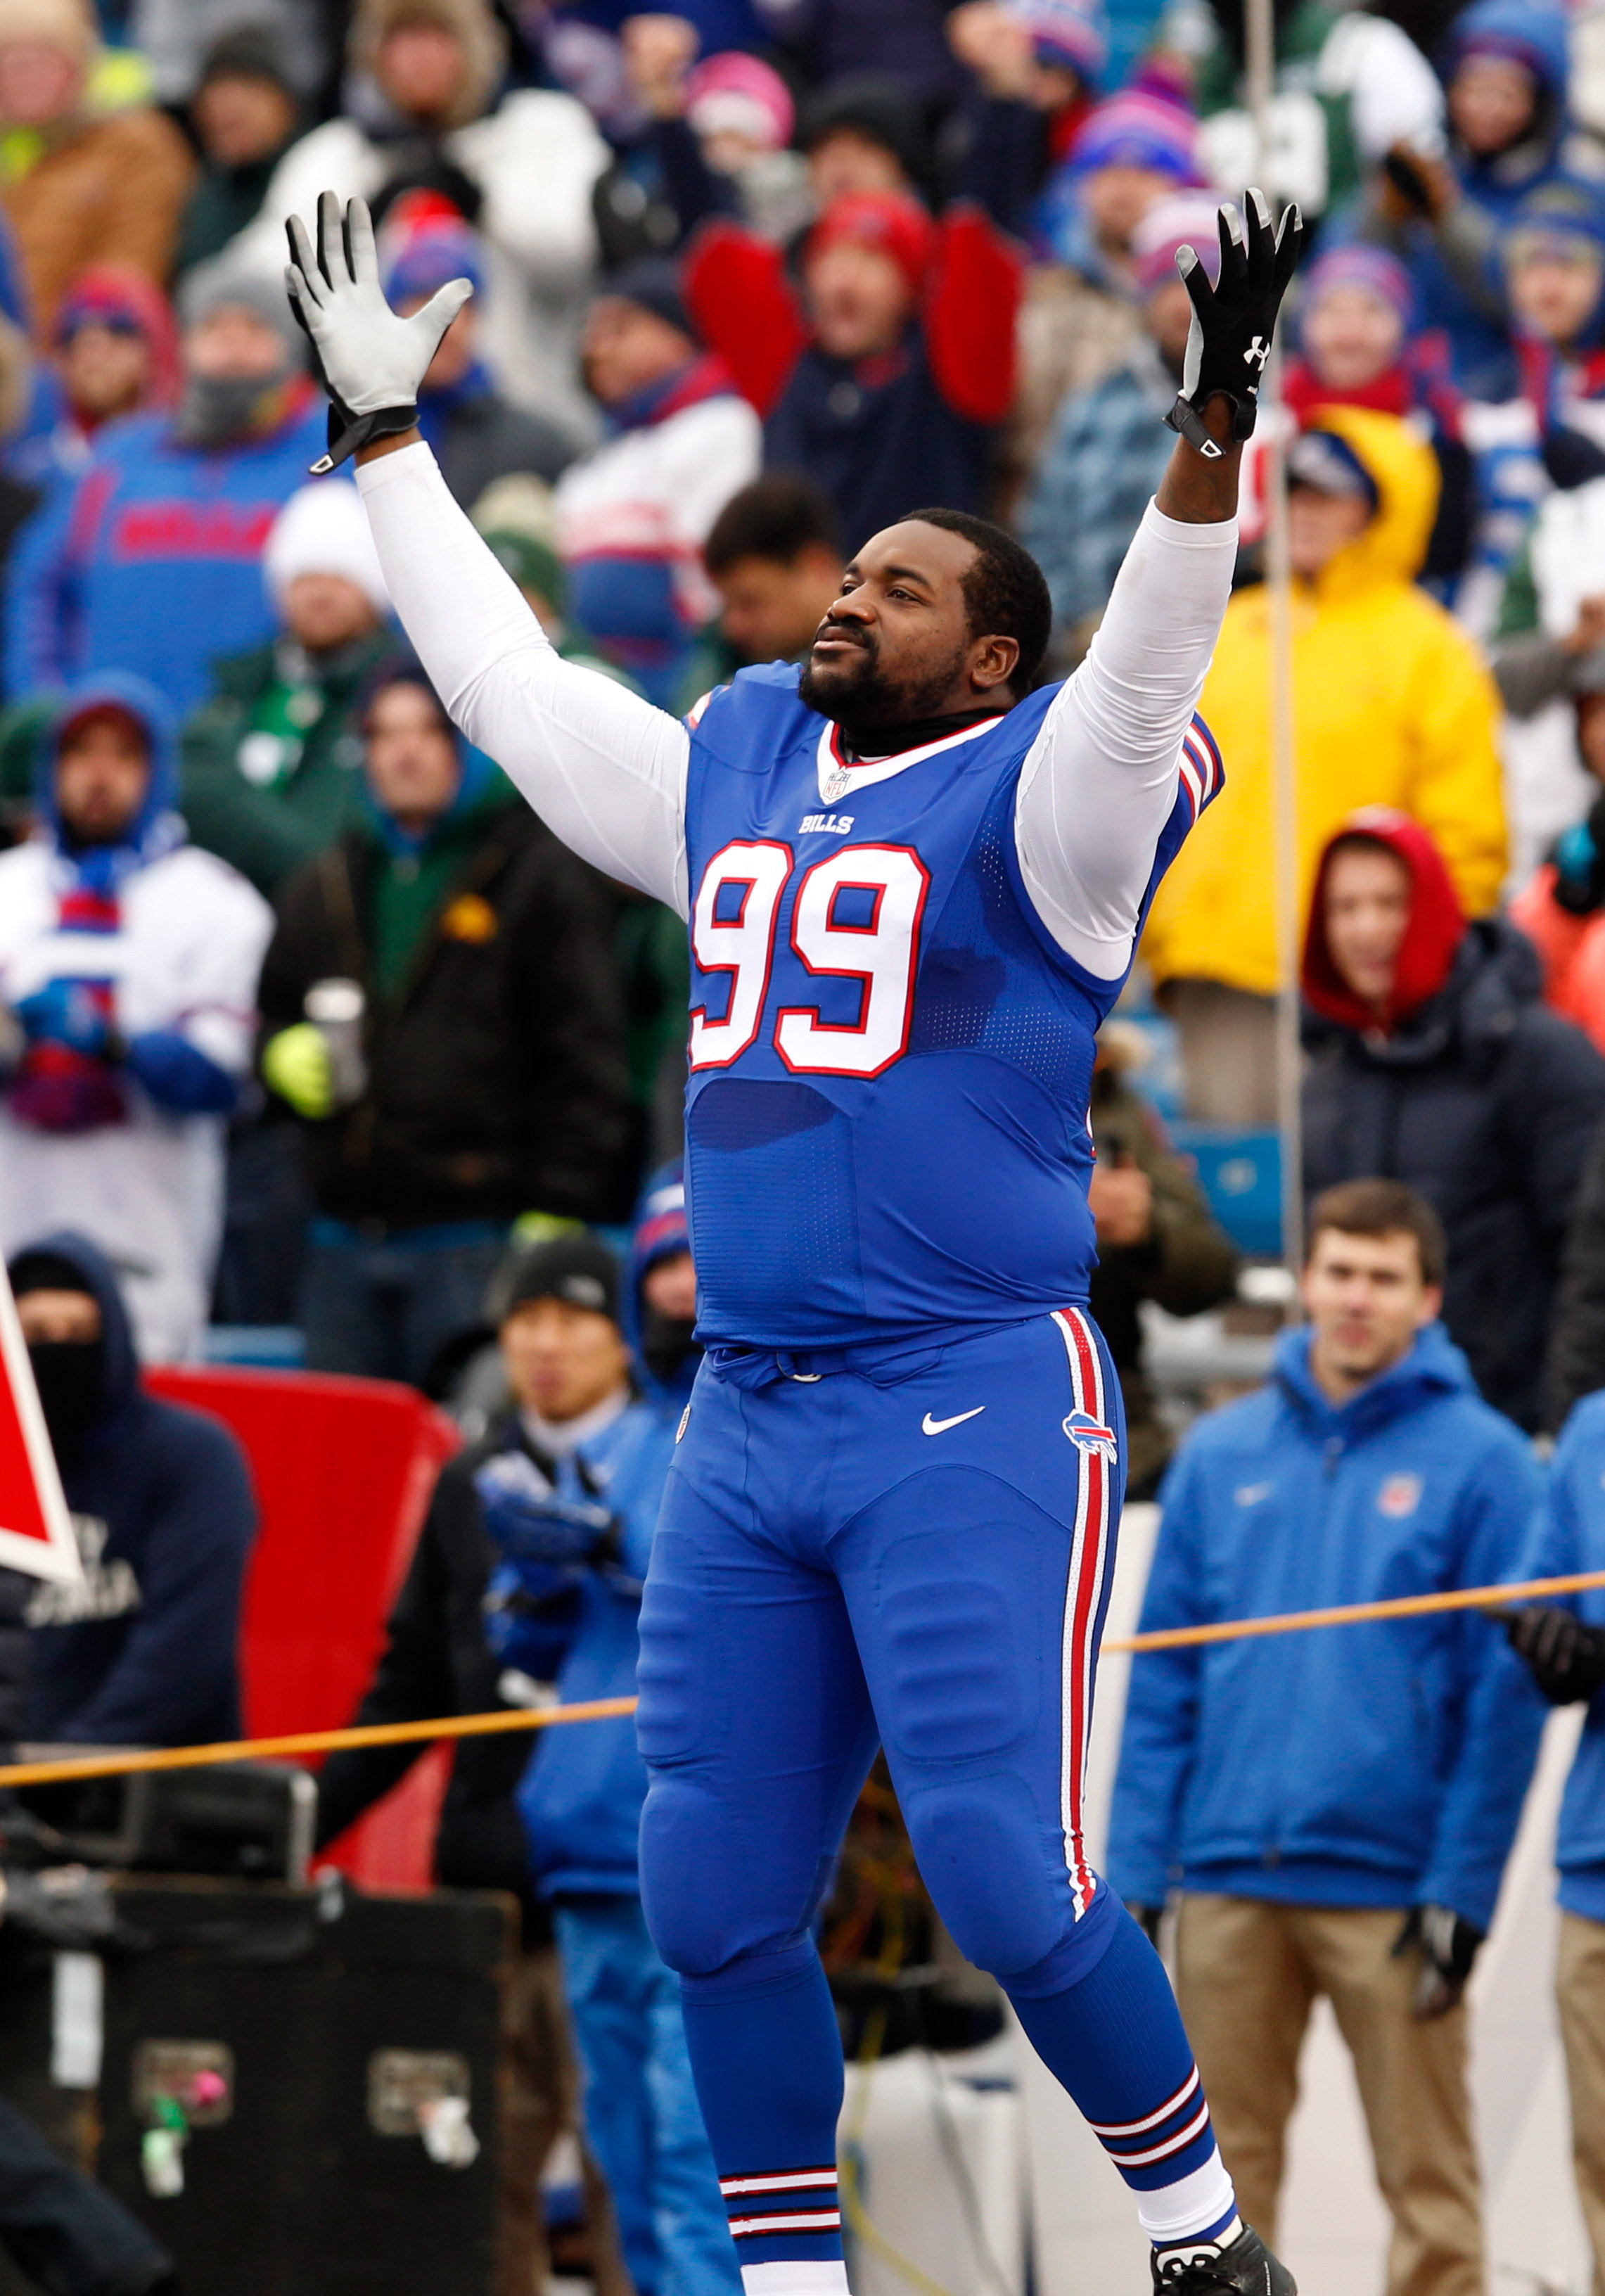 Latest Bills DT Marcell Dareus